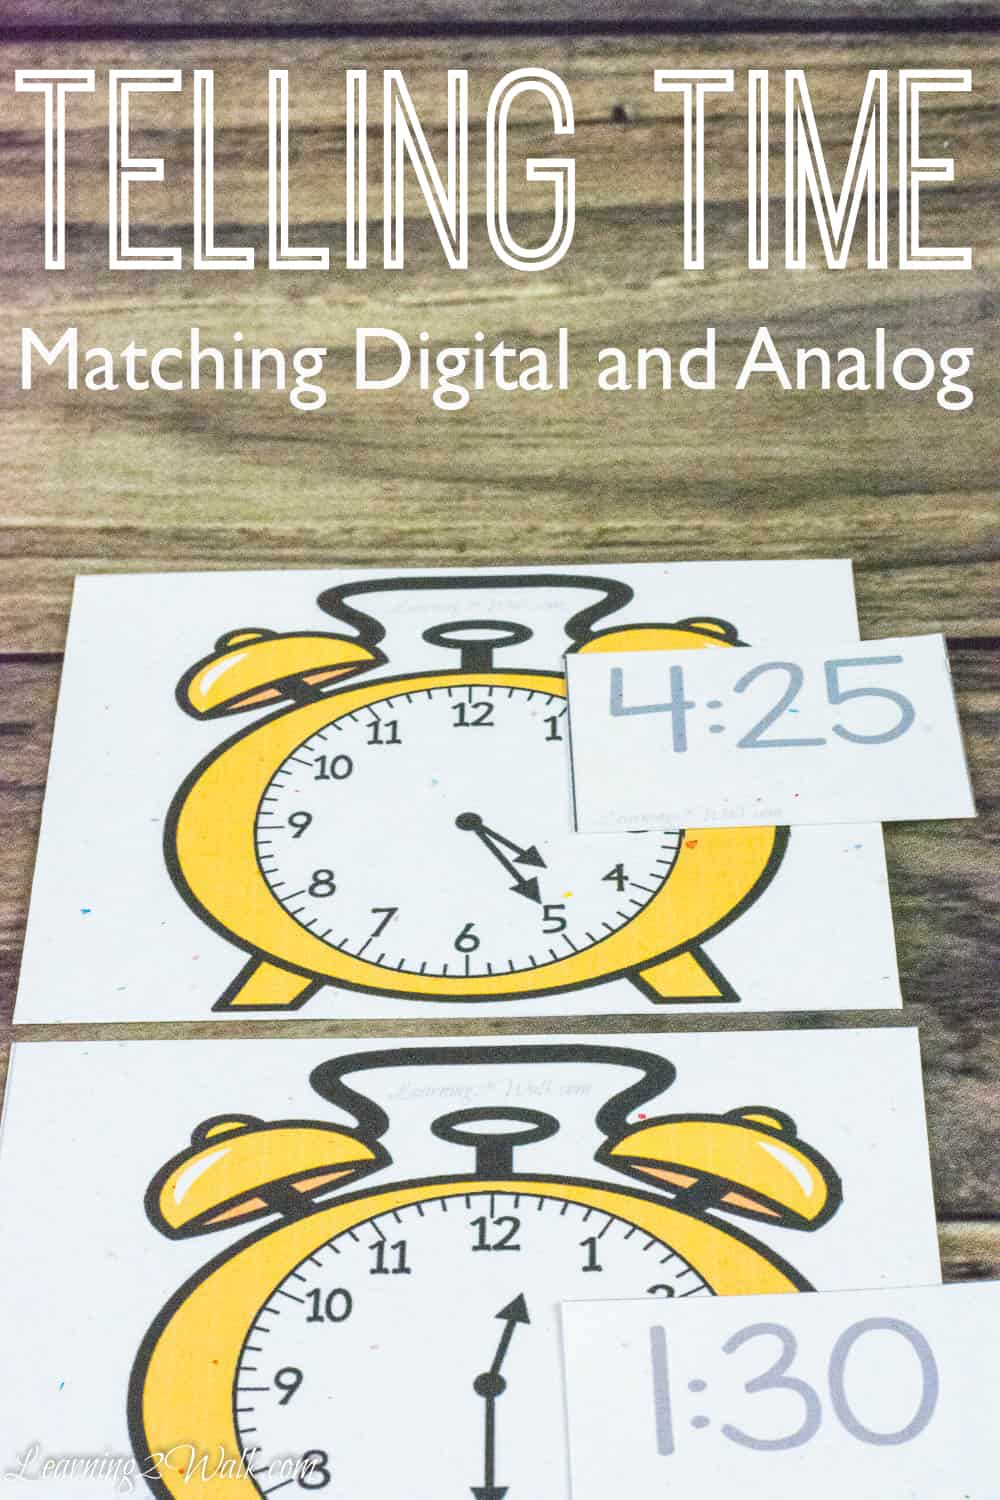 Use these analog and digital clock matching cards to help master telling the time